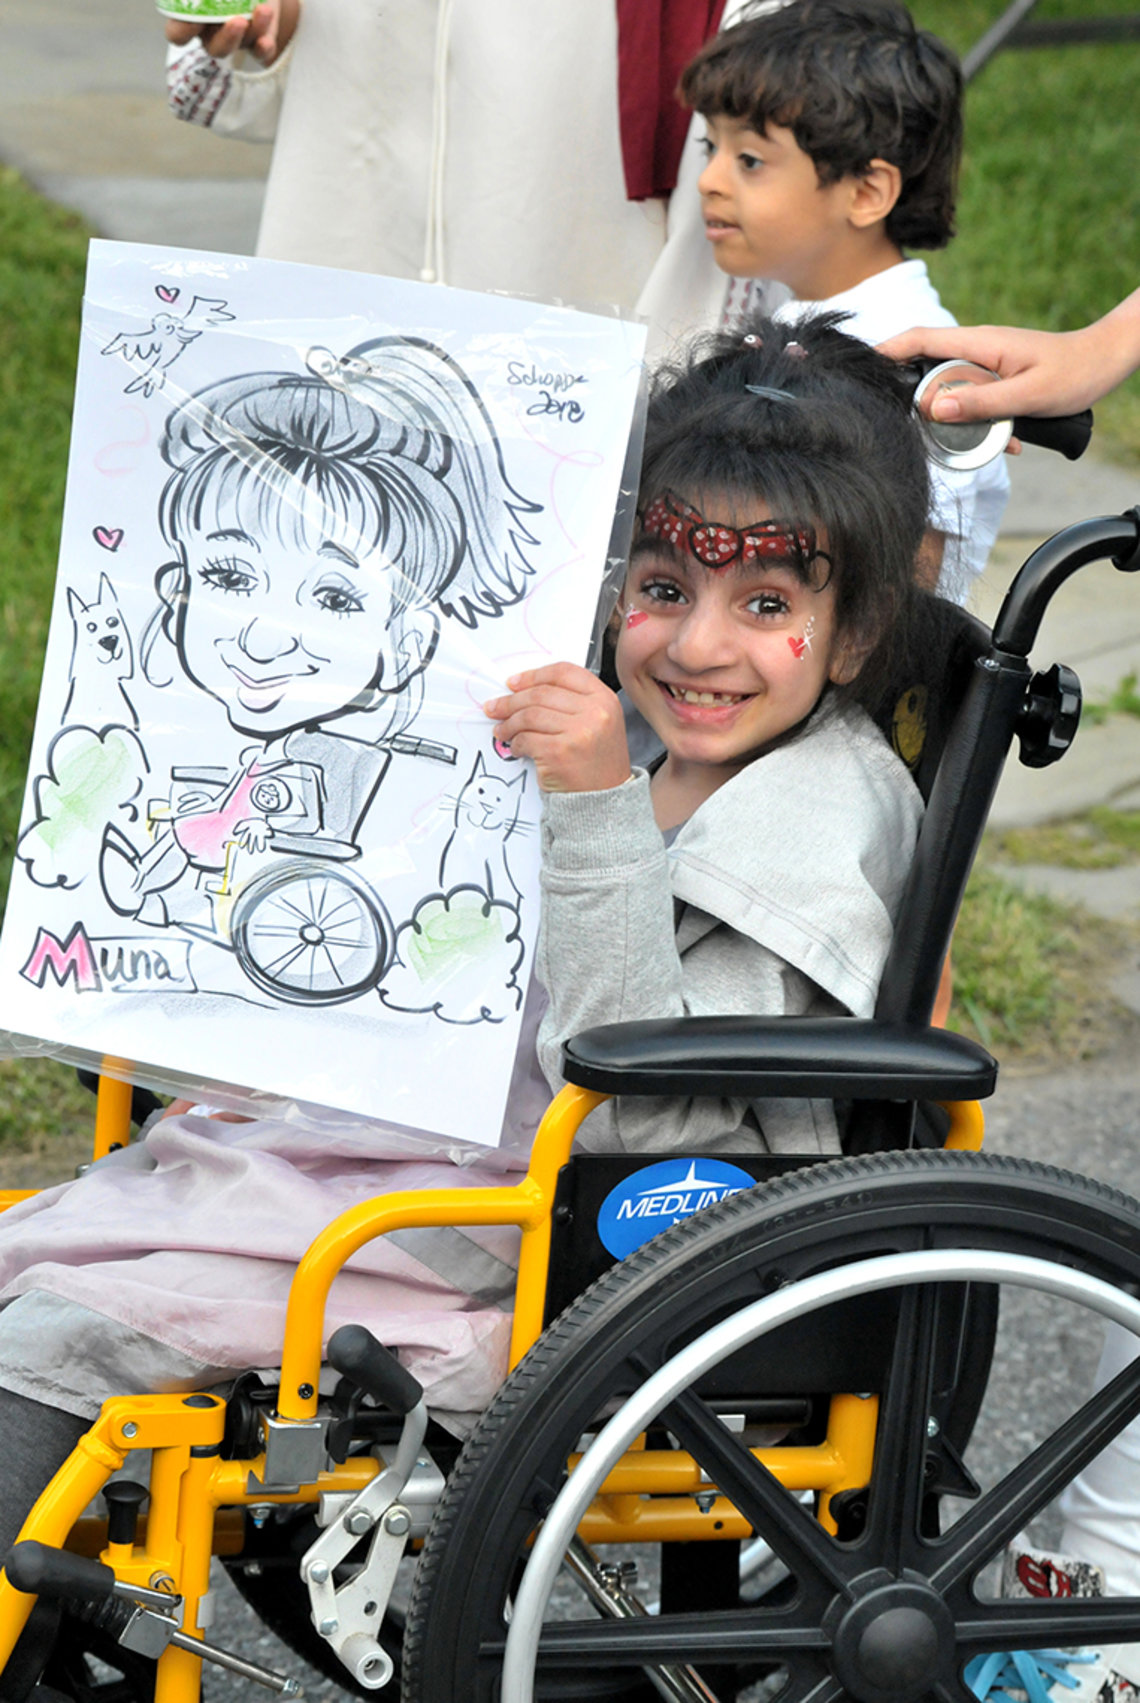 Muna Albusaidi, 8, beams as she shows off the caricature of her made at the inn's summer carnival.